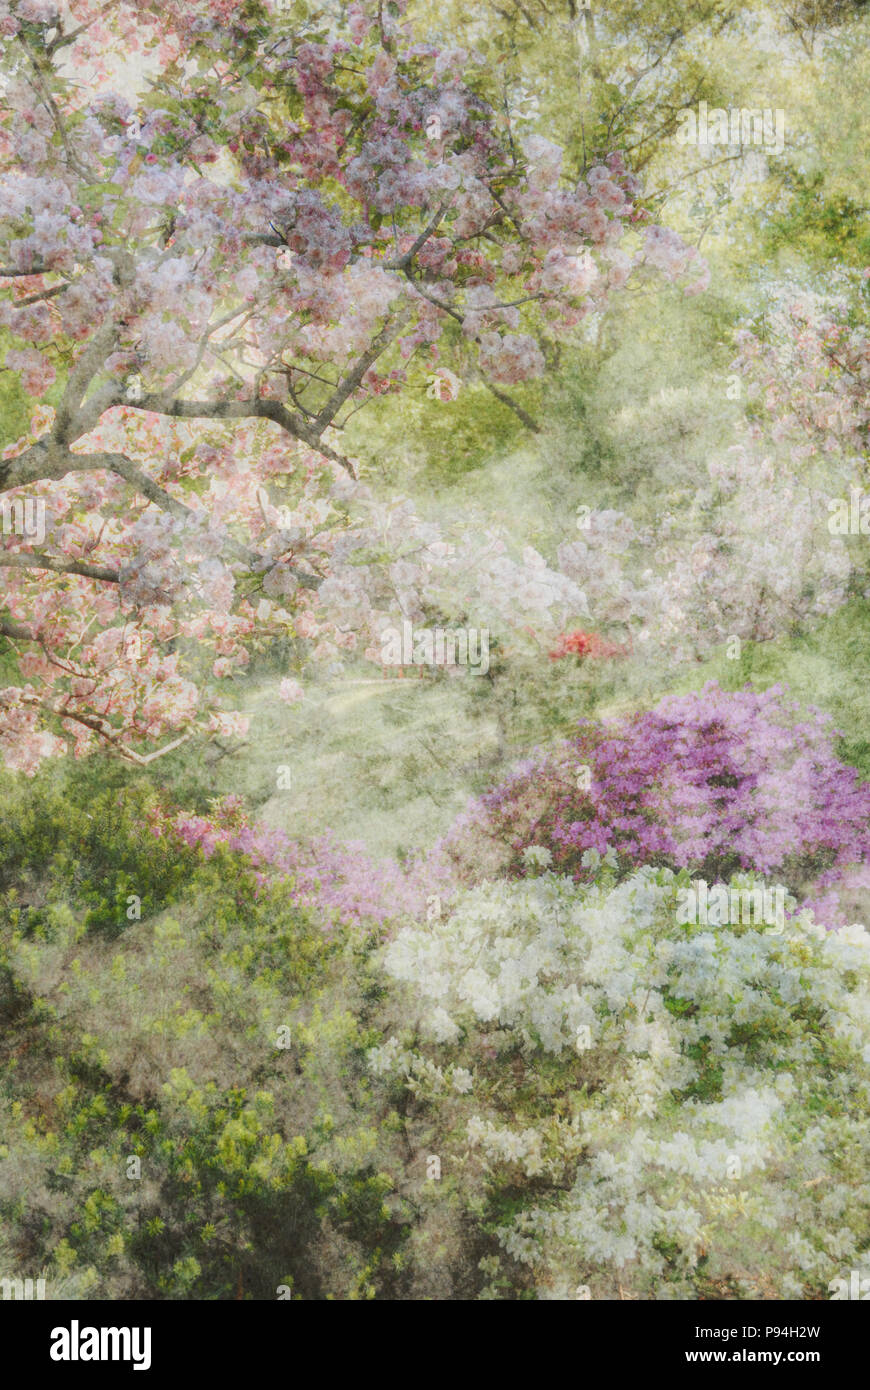 Abstract garden floral background, hazy spring pastels - Stock Image